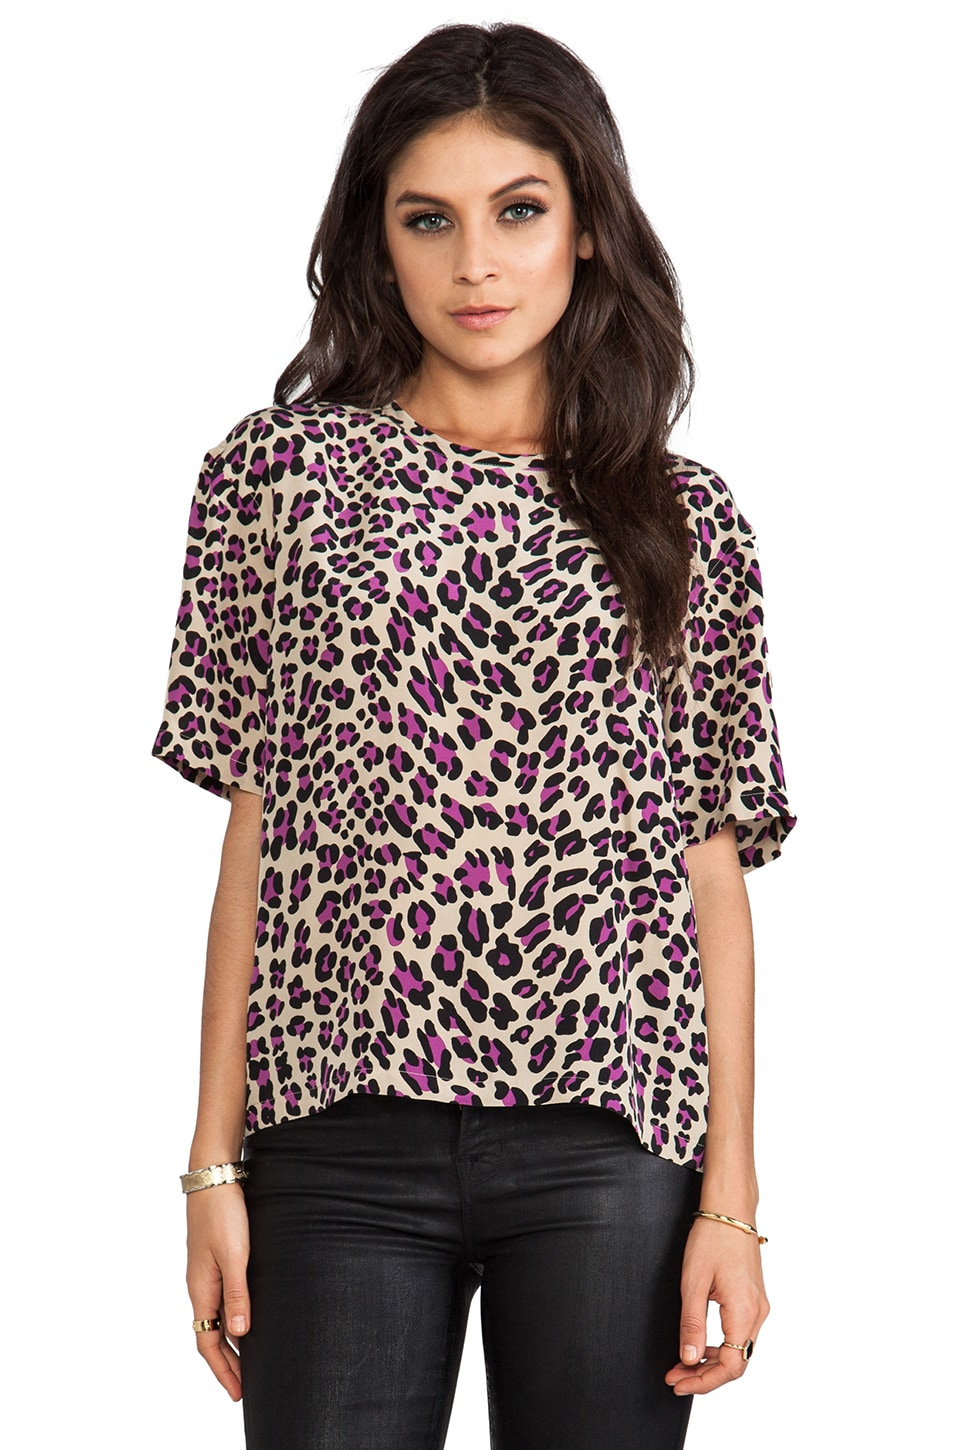 Equipment Logan Modern Leopard Tee in Dune